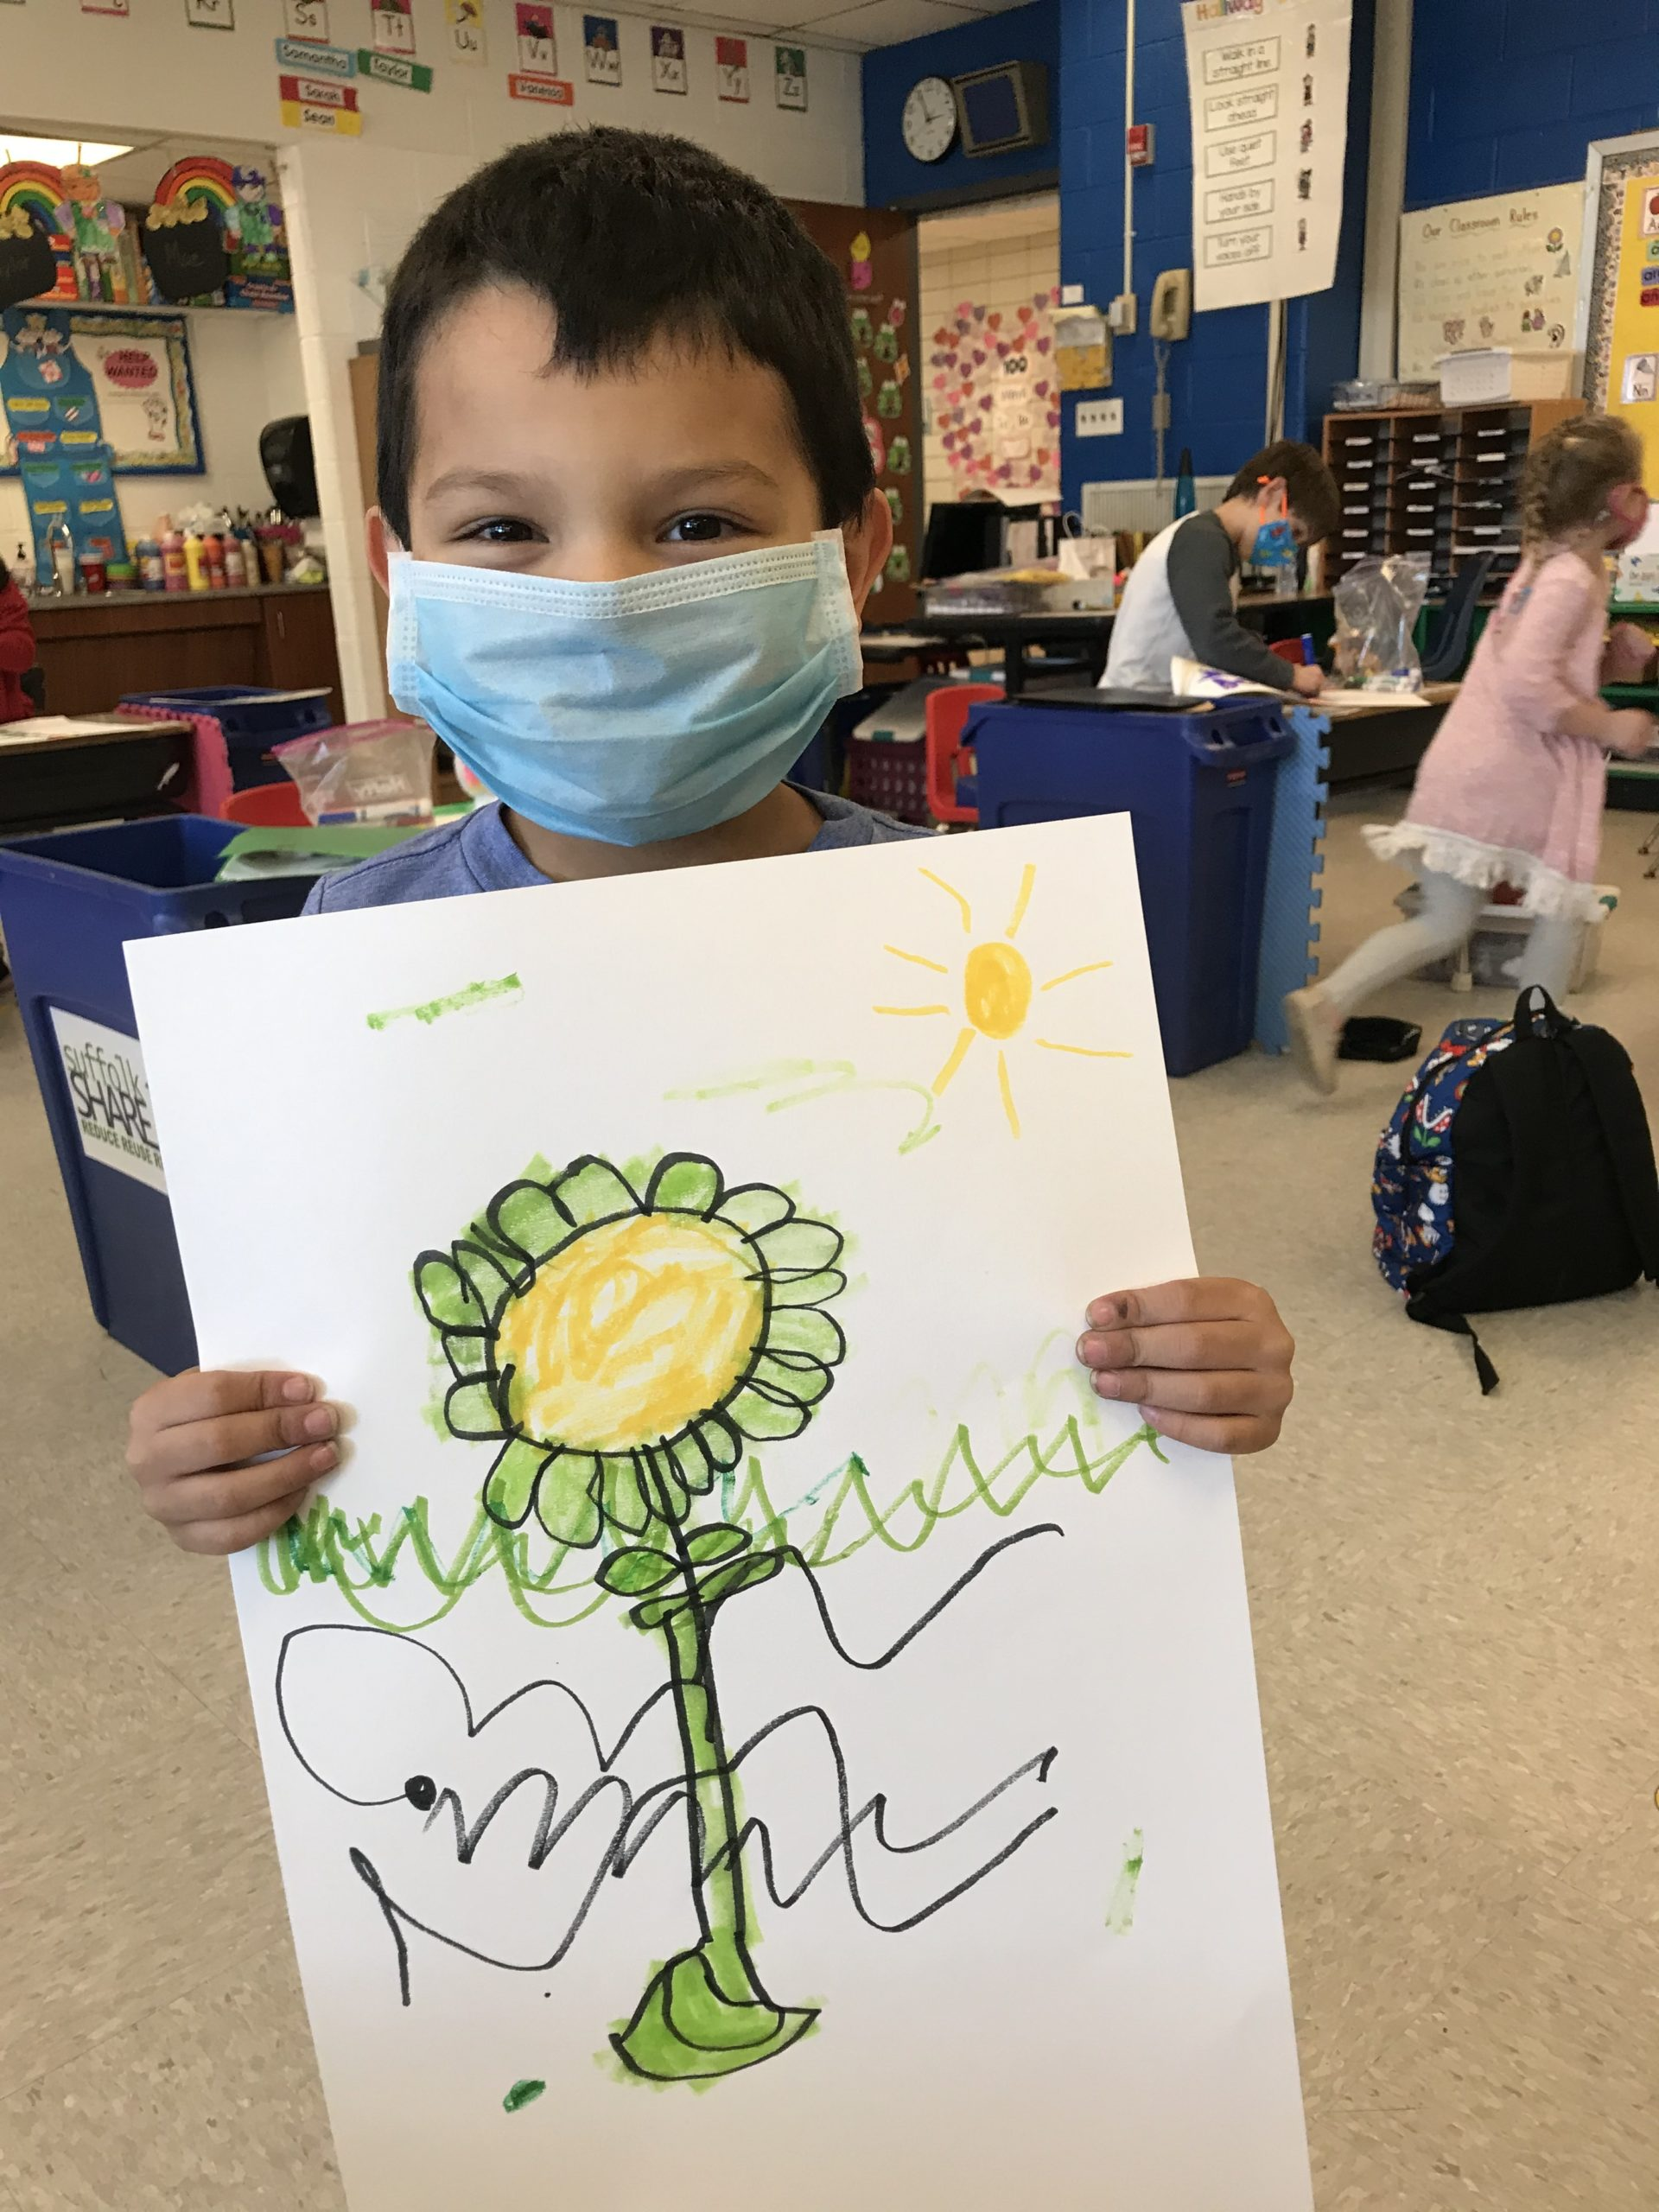 """June Eaton's class at Hampton Bays Elementary School learned more about the life cycle of plants through a variety of activities. Following a reading of """"The Tiny Seed"""" by Eric Carle, the students watched science videos on plants, illustrated and labeled plant parts such as the roots, stems, leaves and flowers, created """"word flowers"""" that featured newly learned vocabulary, and planted their very own seeds."""